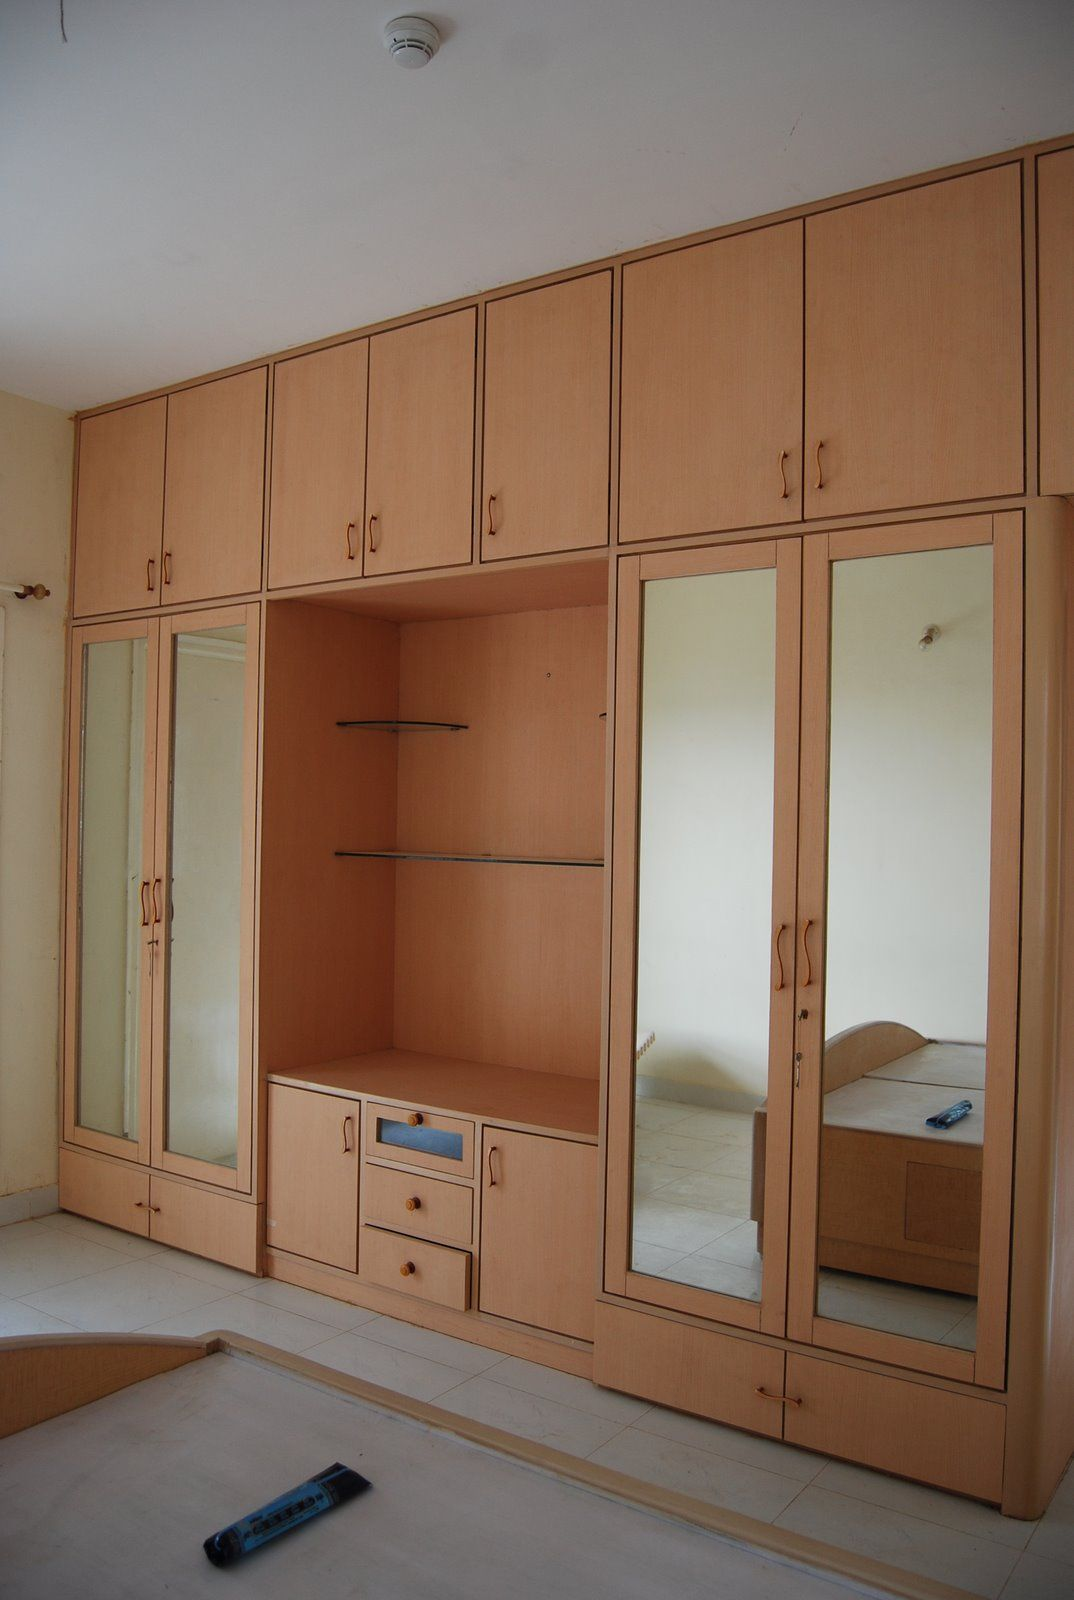 Bedroom Wardrobe Closet-wardrobe-4-storing-cabinet | Hand Made ...